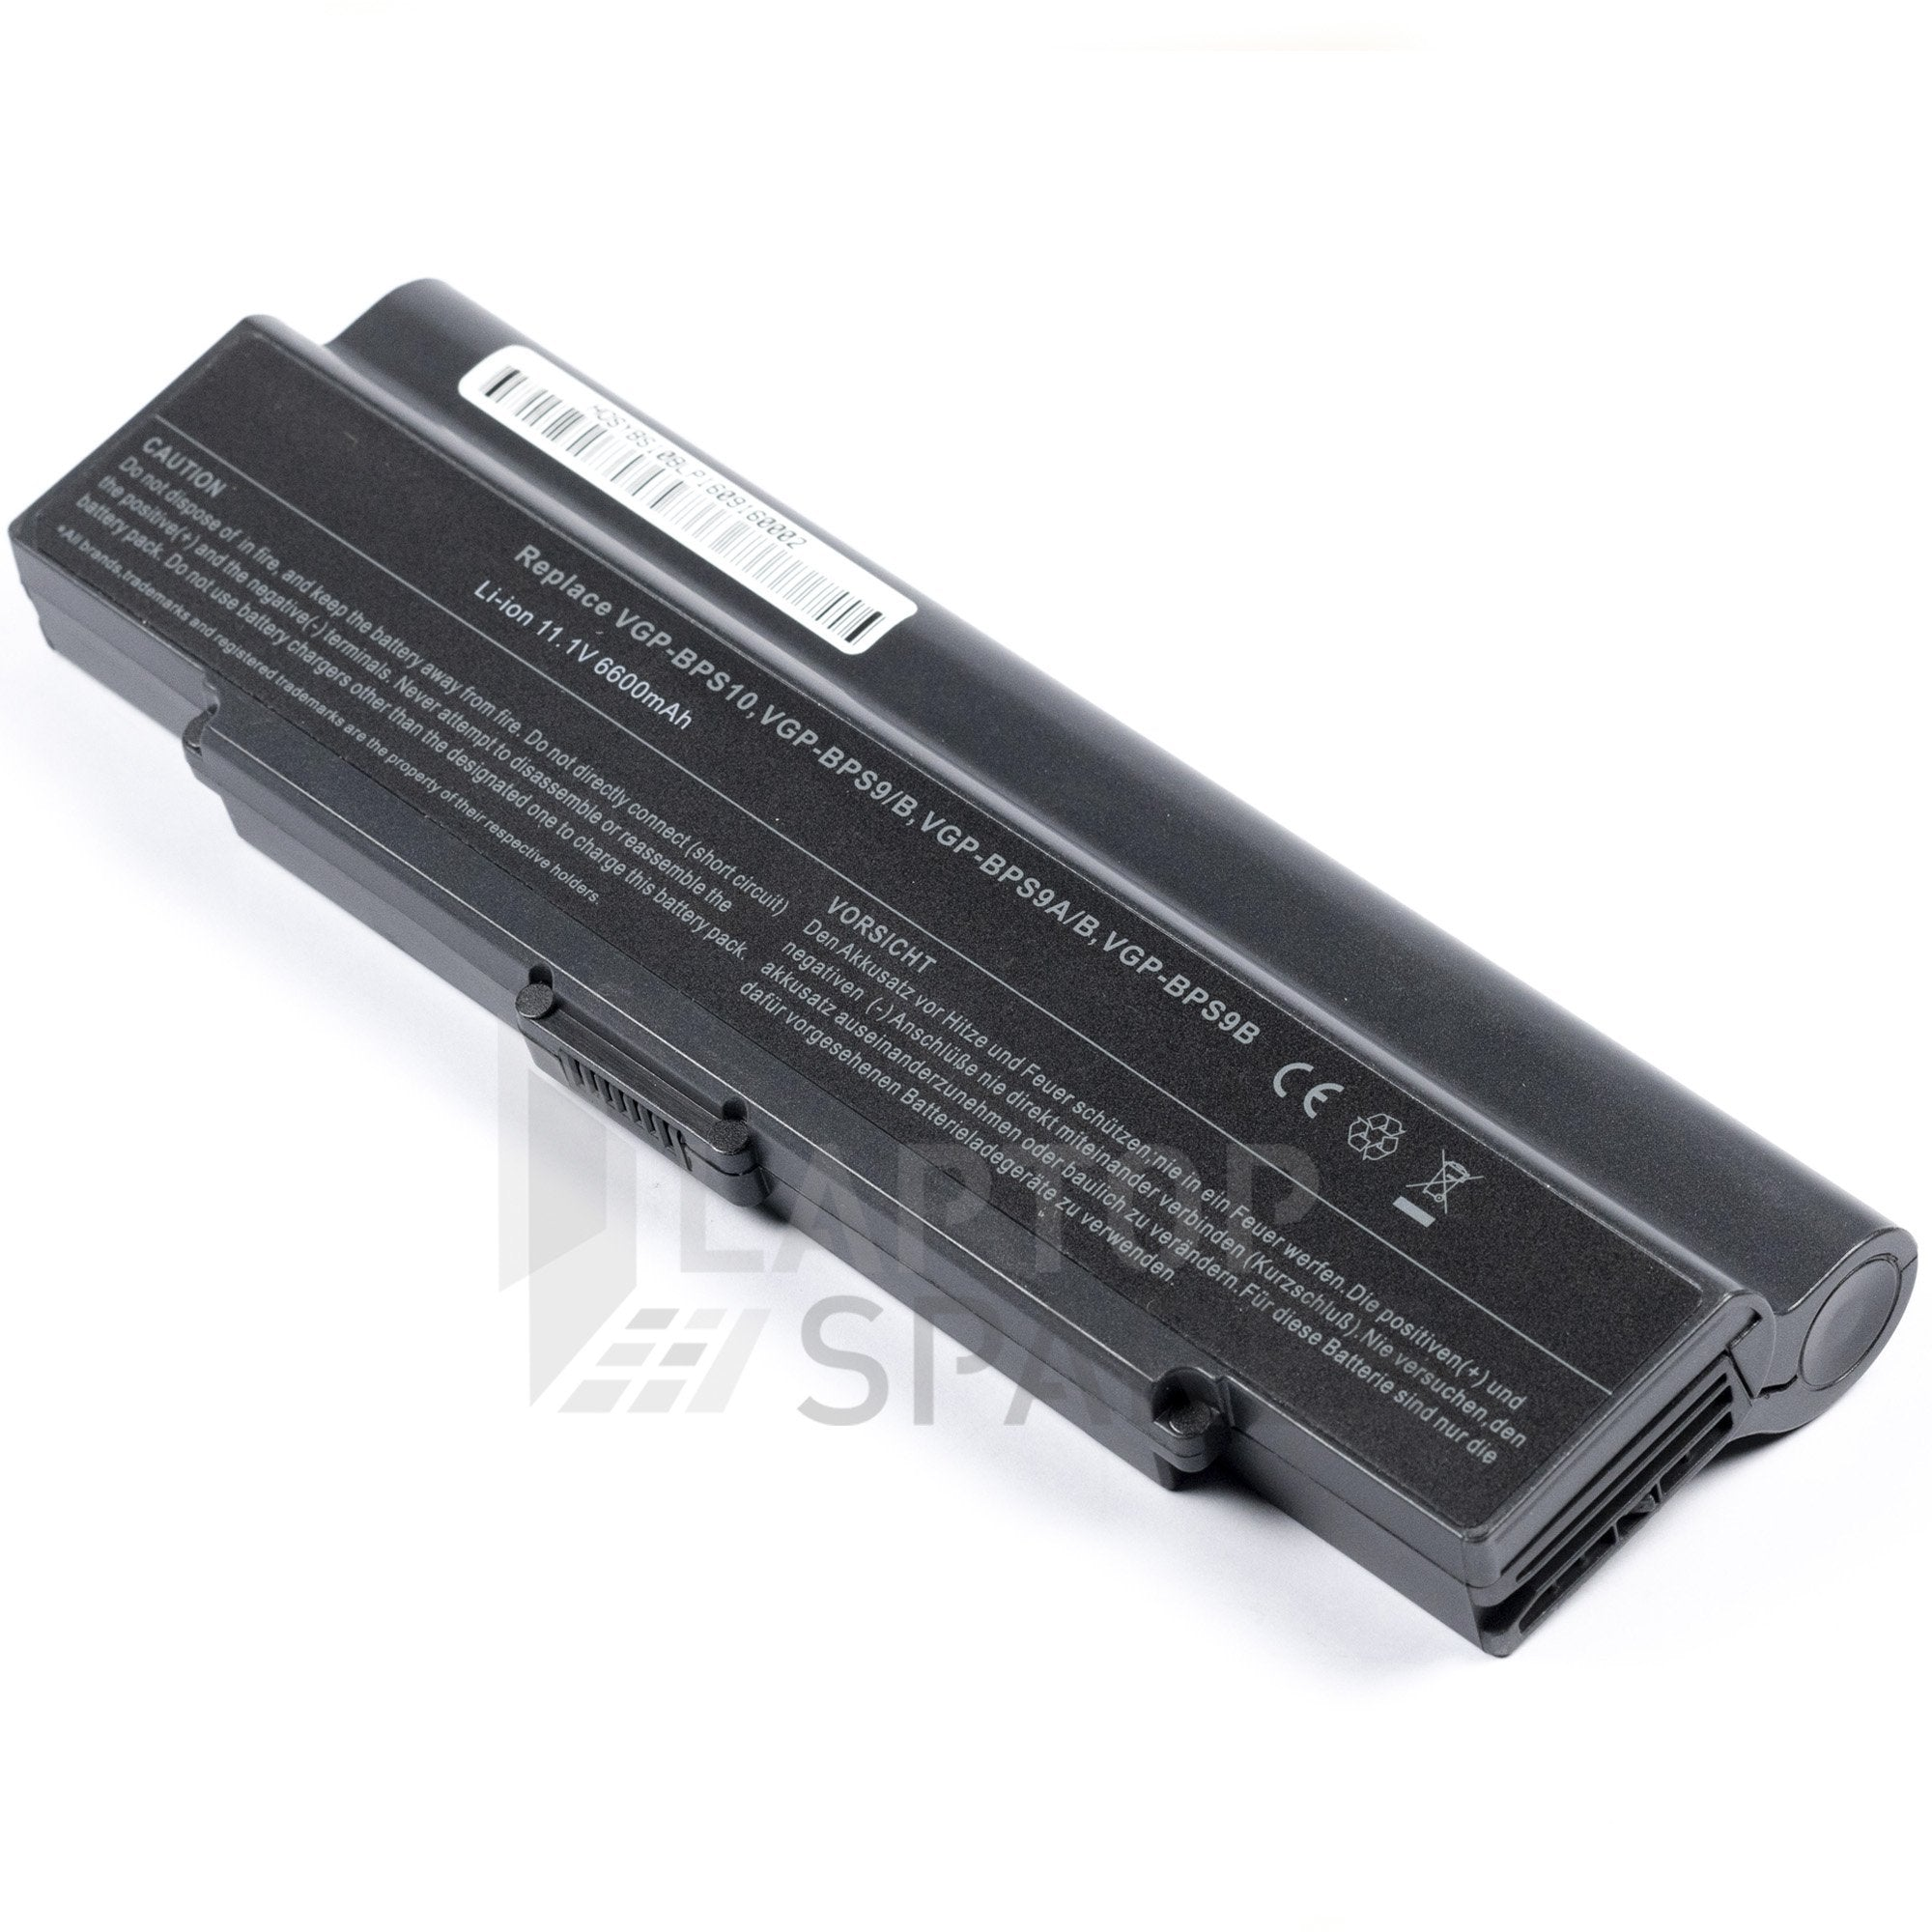 Sony Vaio VGN CR13T/L CR13T/P 6600mAh 9 Cell Battery